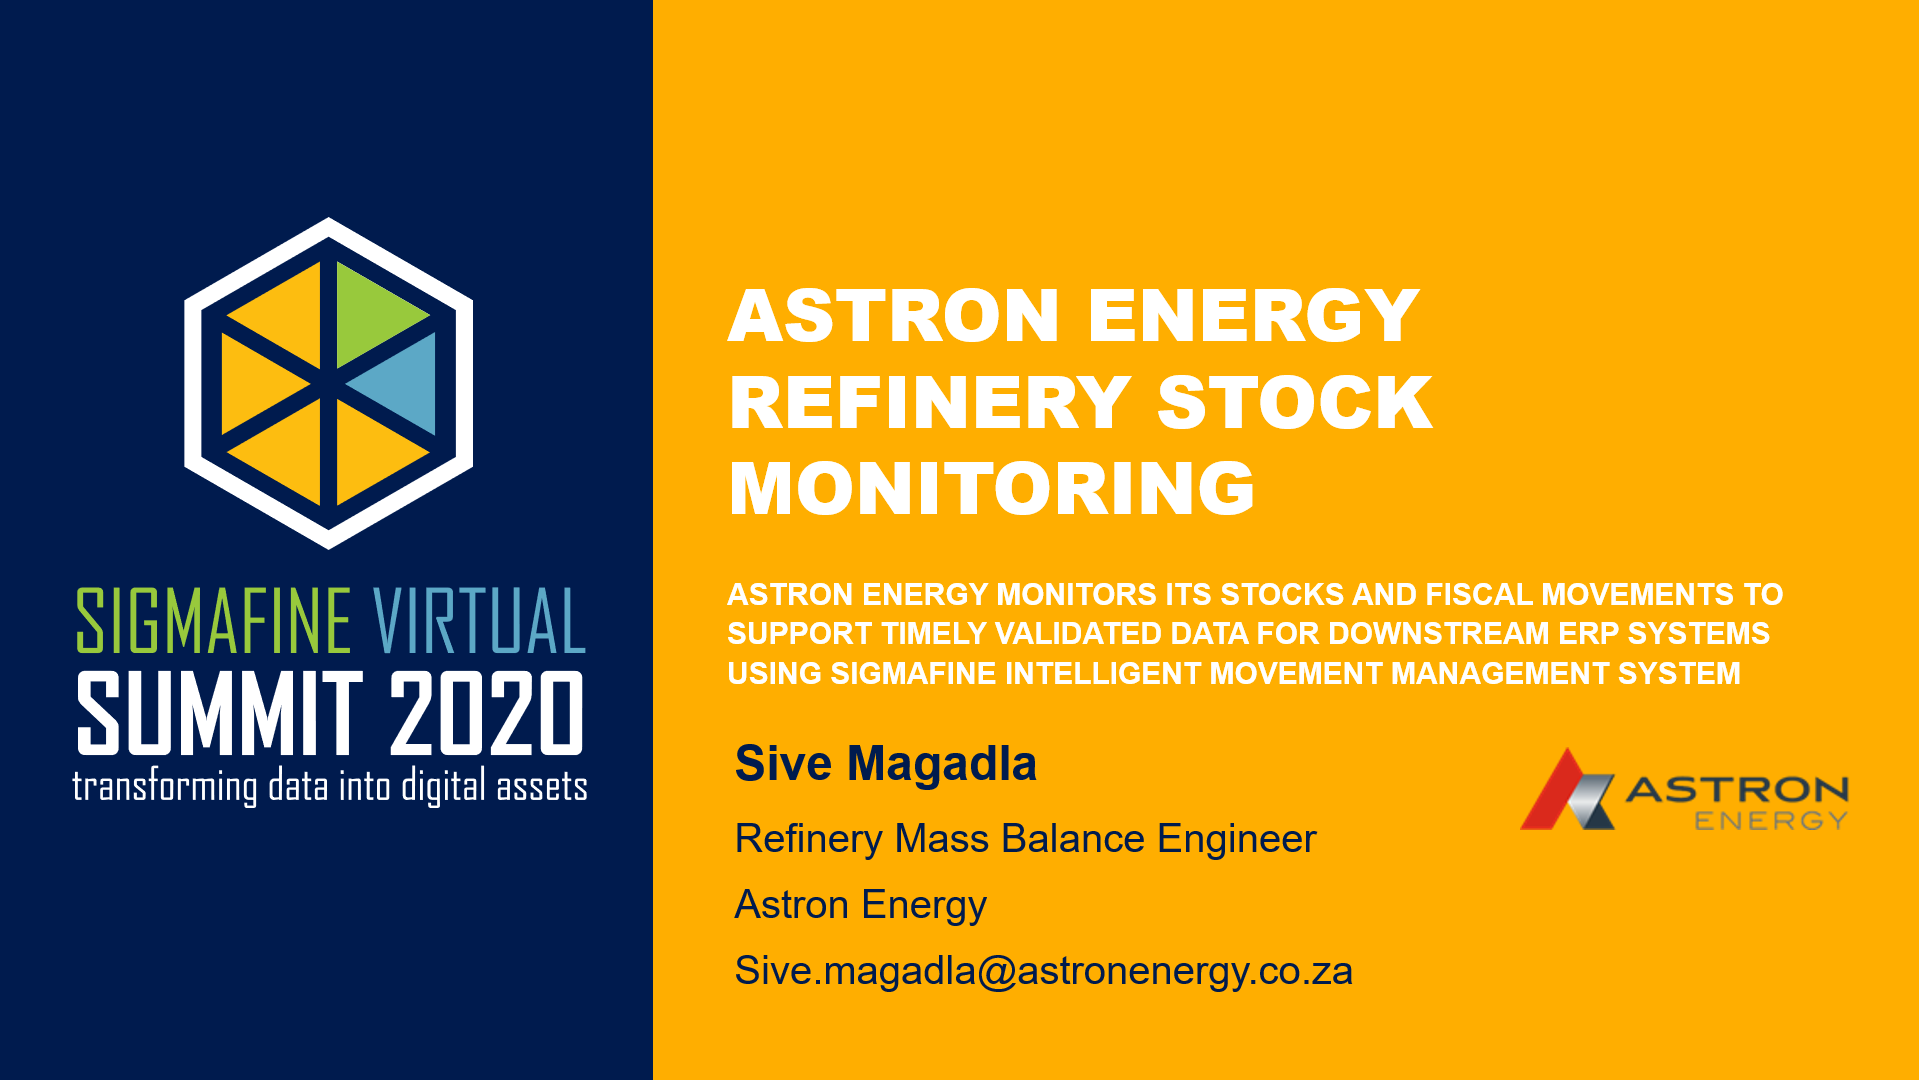 Monitoring stocks and fiscal movements to supply timely integration to Astron Energy ERP using Sigmafine IMM